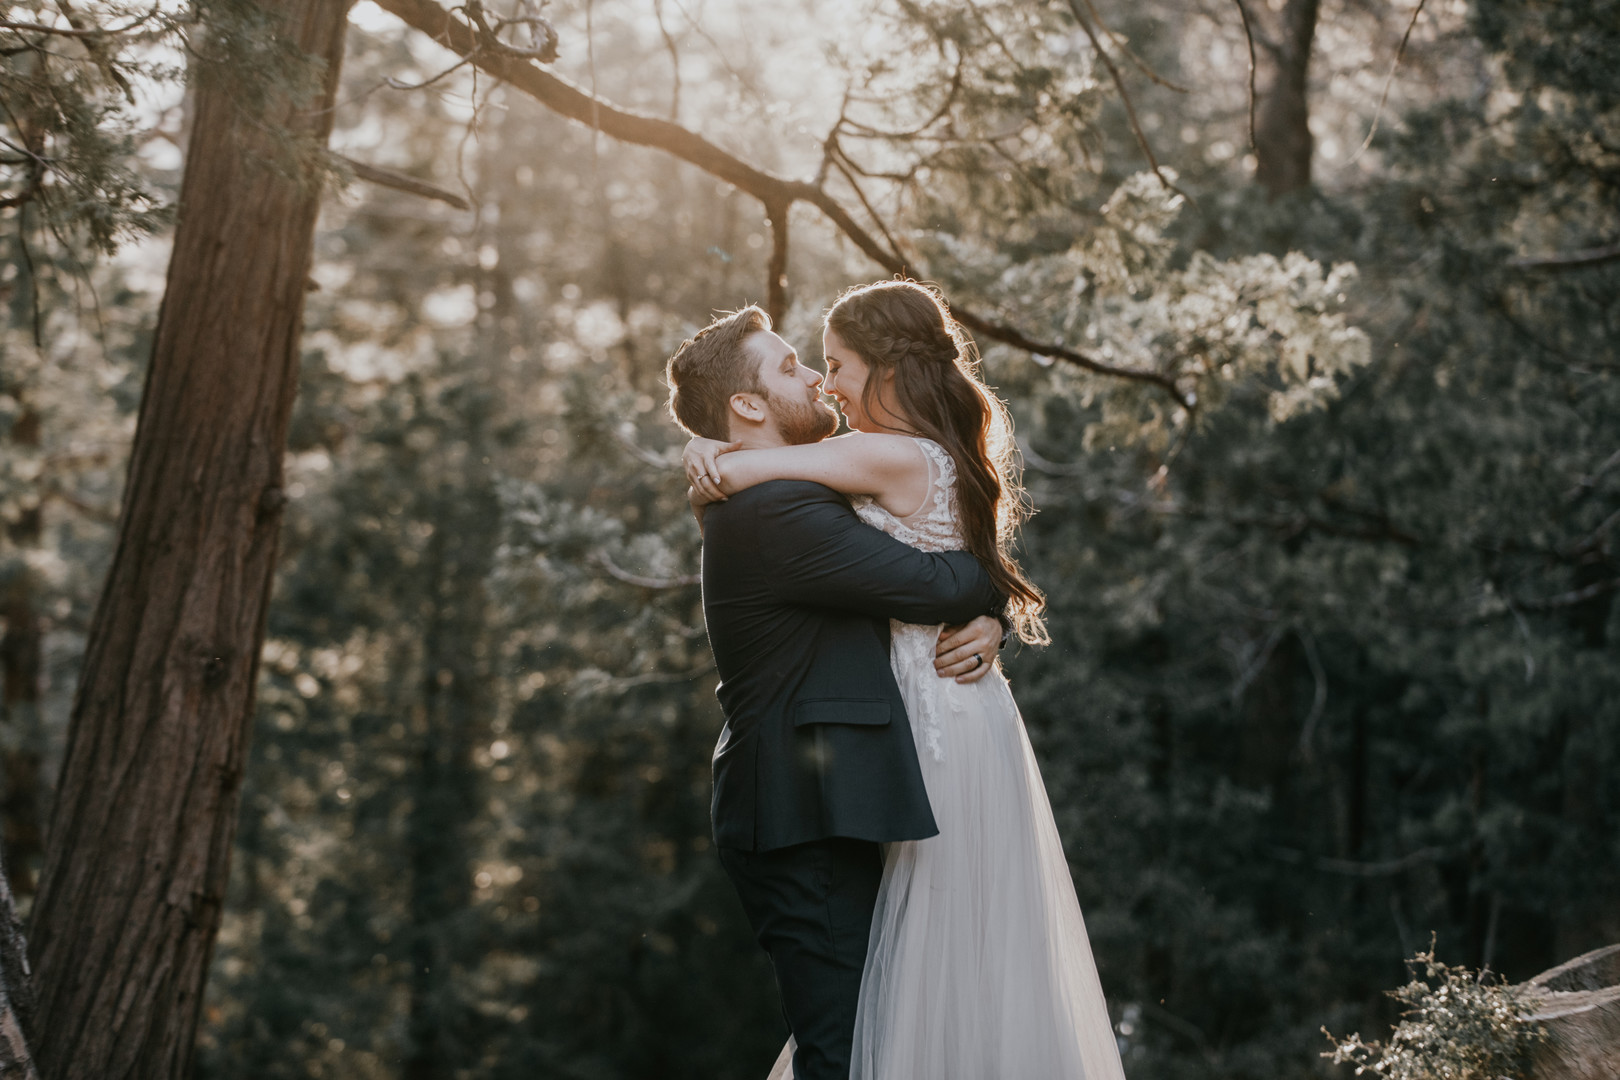 May wedding in the woods